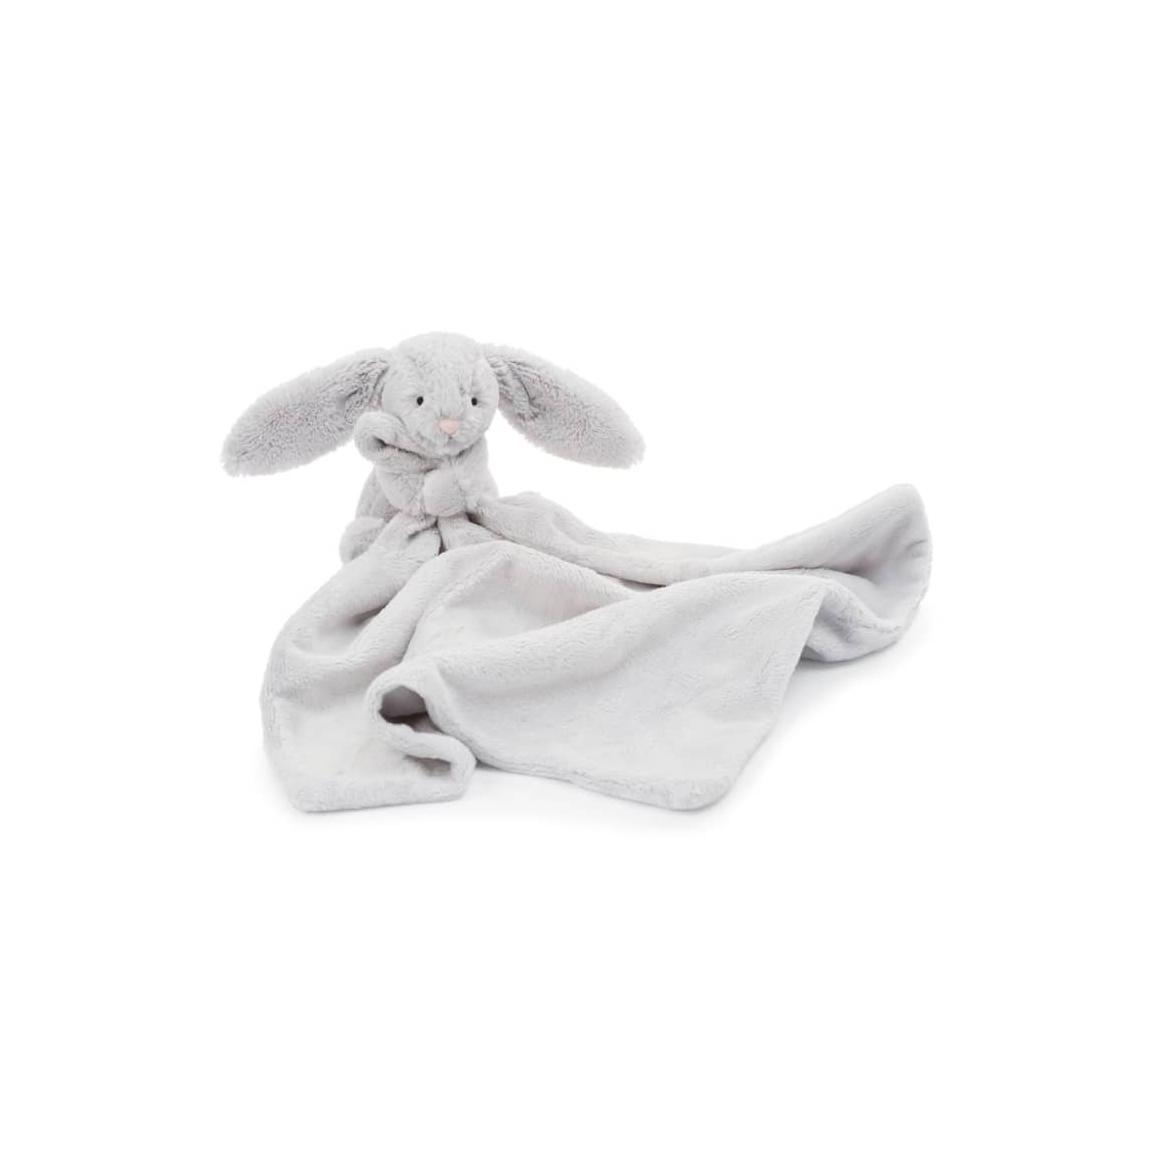 Jellycat Grey Bunny Soother Blanket